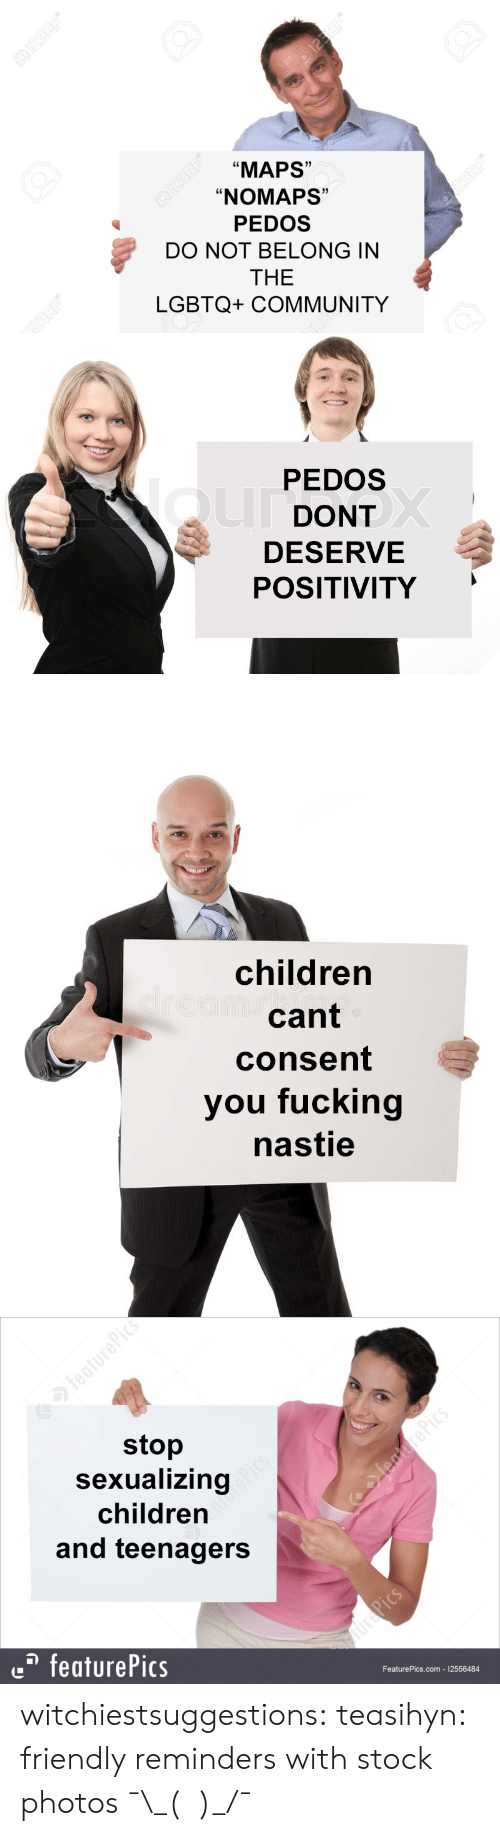 """Children, Community, and Fucking: """"MAPS""""  """"NOMAPS""""  PEDOS  DO NOT BELONG IN  THE  LGBTQ+ COMMUNITY  Ld  1)  C0  1   PEDOS  DONT  DESERVE  POSITIVITY   children  cant  consent  you fucking  nastie   stop  Sexualizing  children  and teenagers  featurePics  FeaturePics.com 12556484 witchiestsuggestions: teasihyn: friendly reminders with stock photos  ¯\_(ツ)_/¯"""